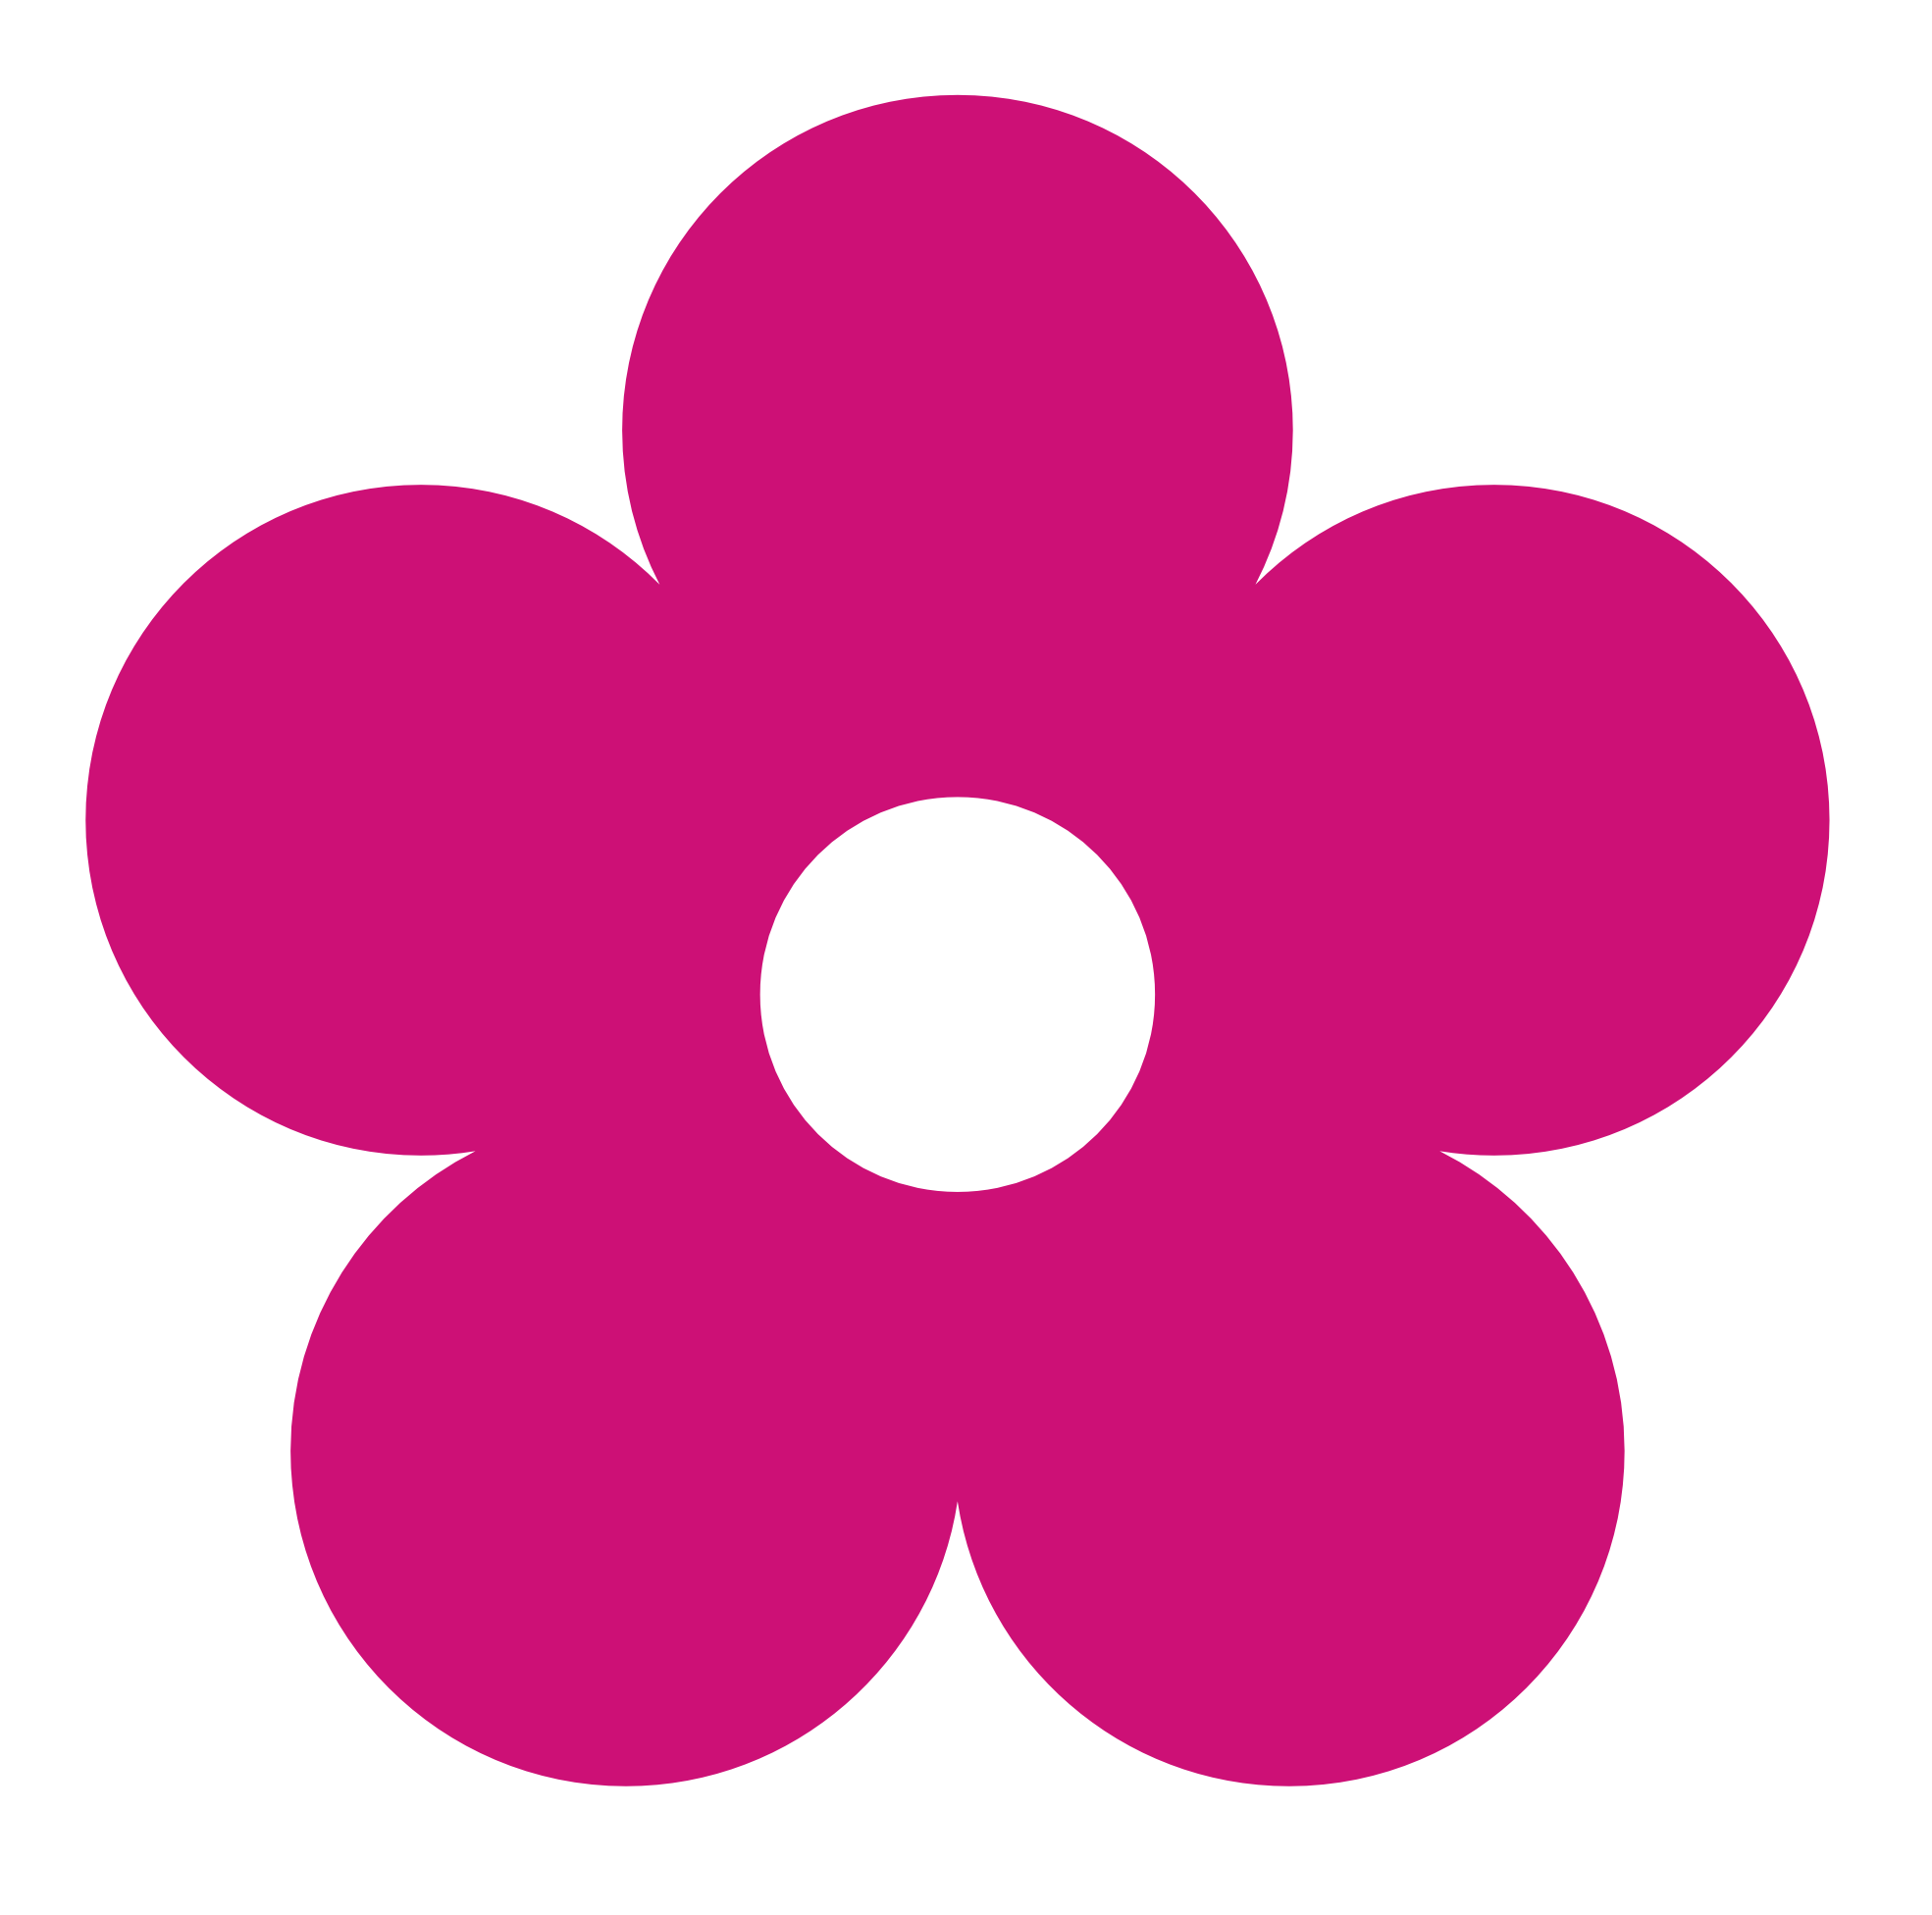 Image flower clipartpink clip. Wednesday clipart pink